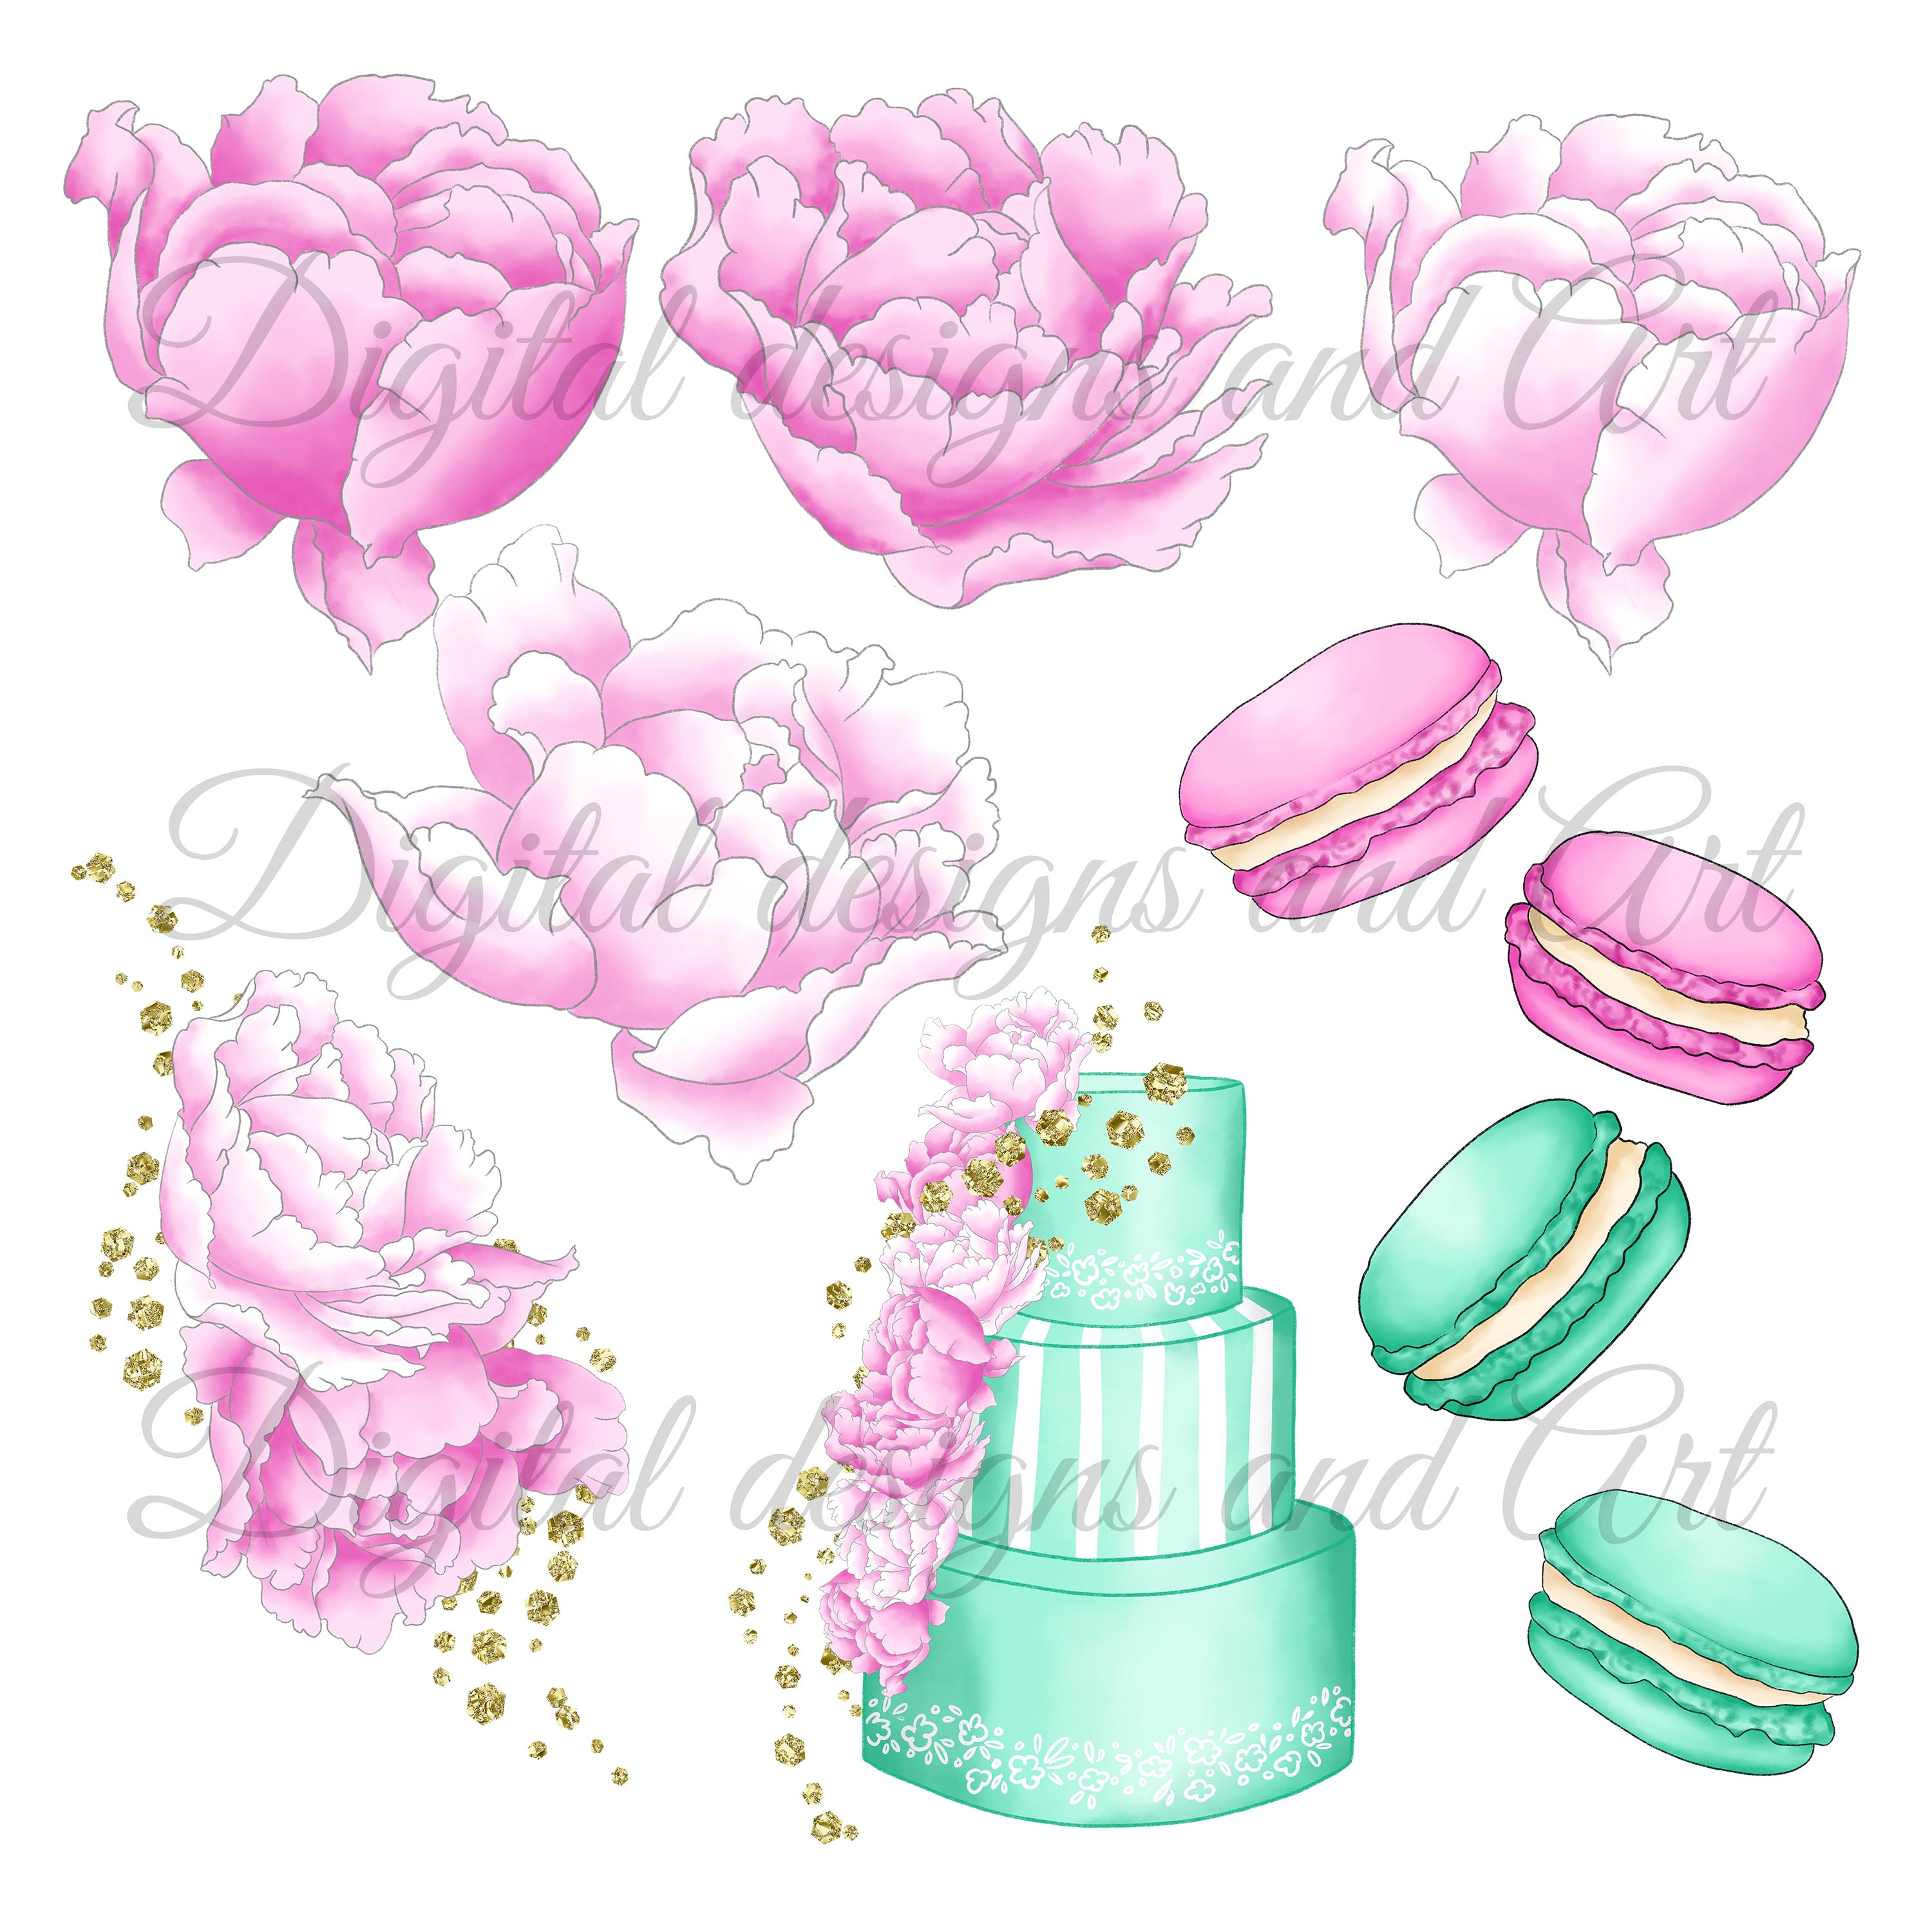 Fashion cakes clipart example image 5